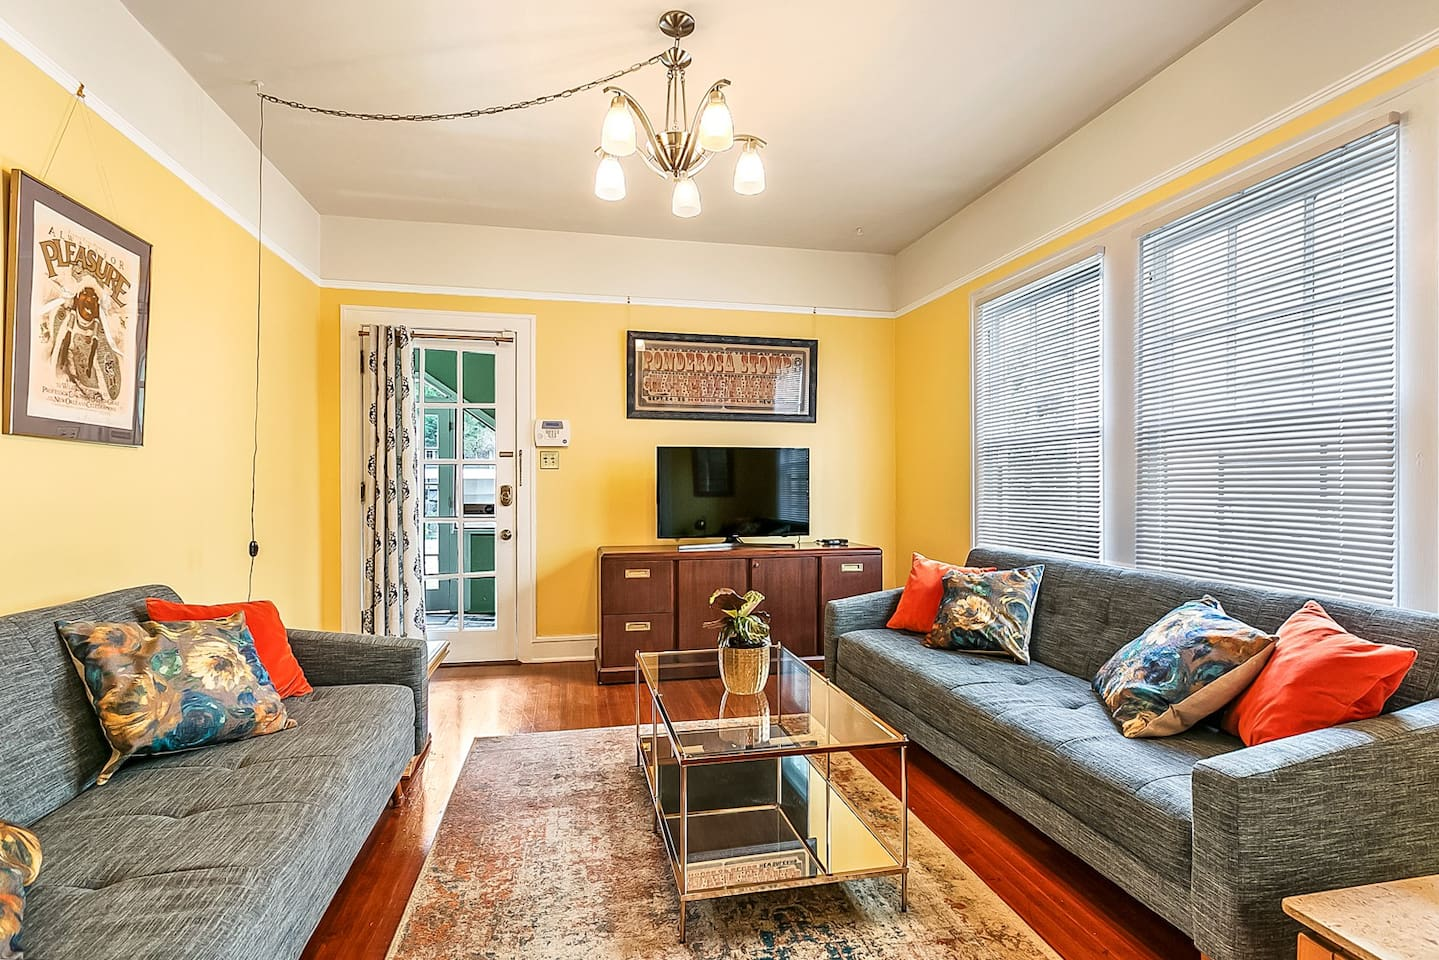 Living room has smart TV w/satellite TV & HBO. Sofas can be opened into futon beds